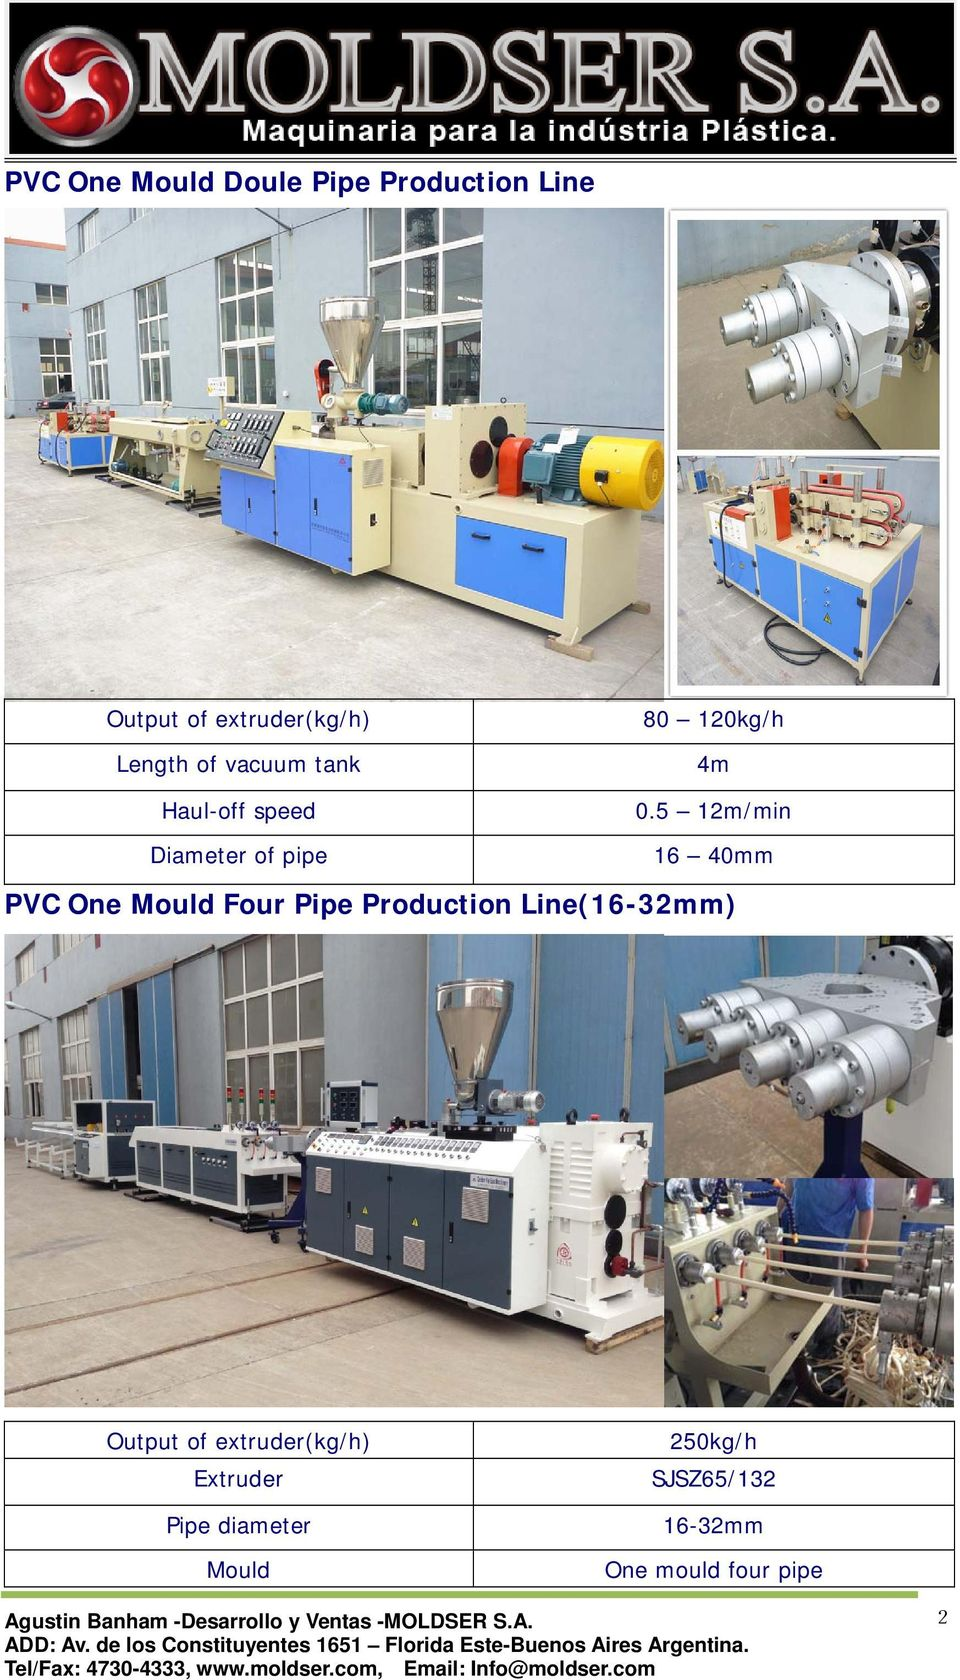 5 12m/min 16 40mm PVC One Mould Four Pipe Production Line(16-32mm) Output of